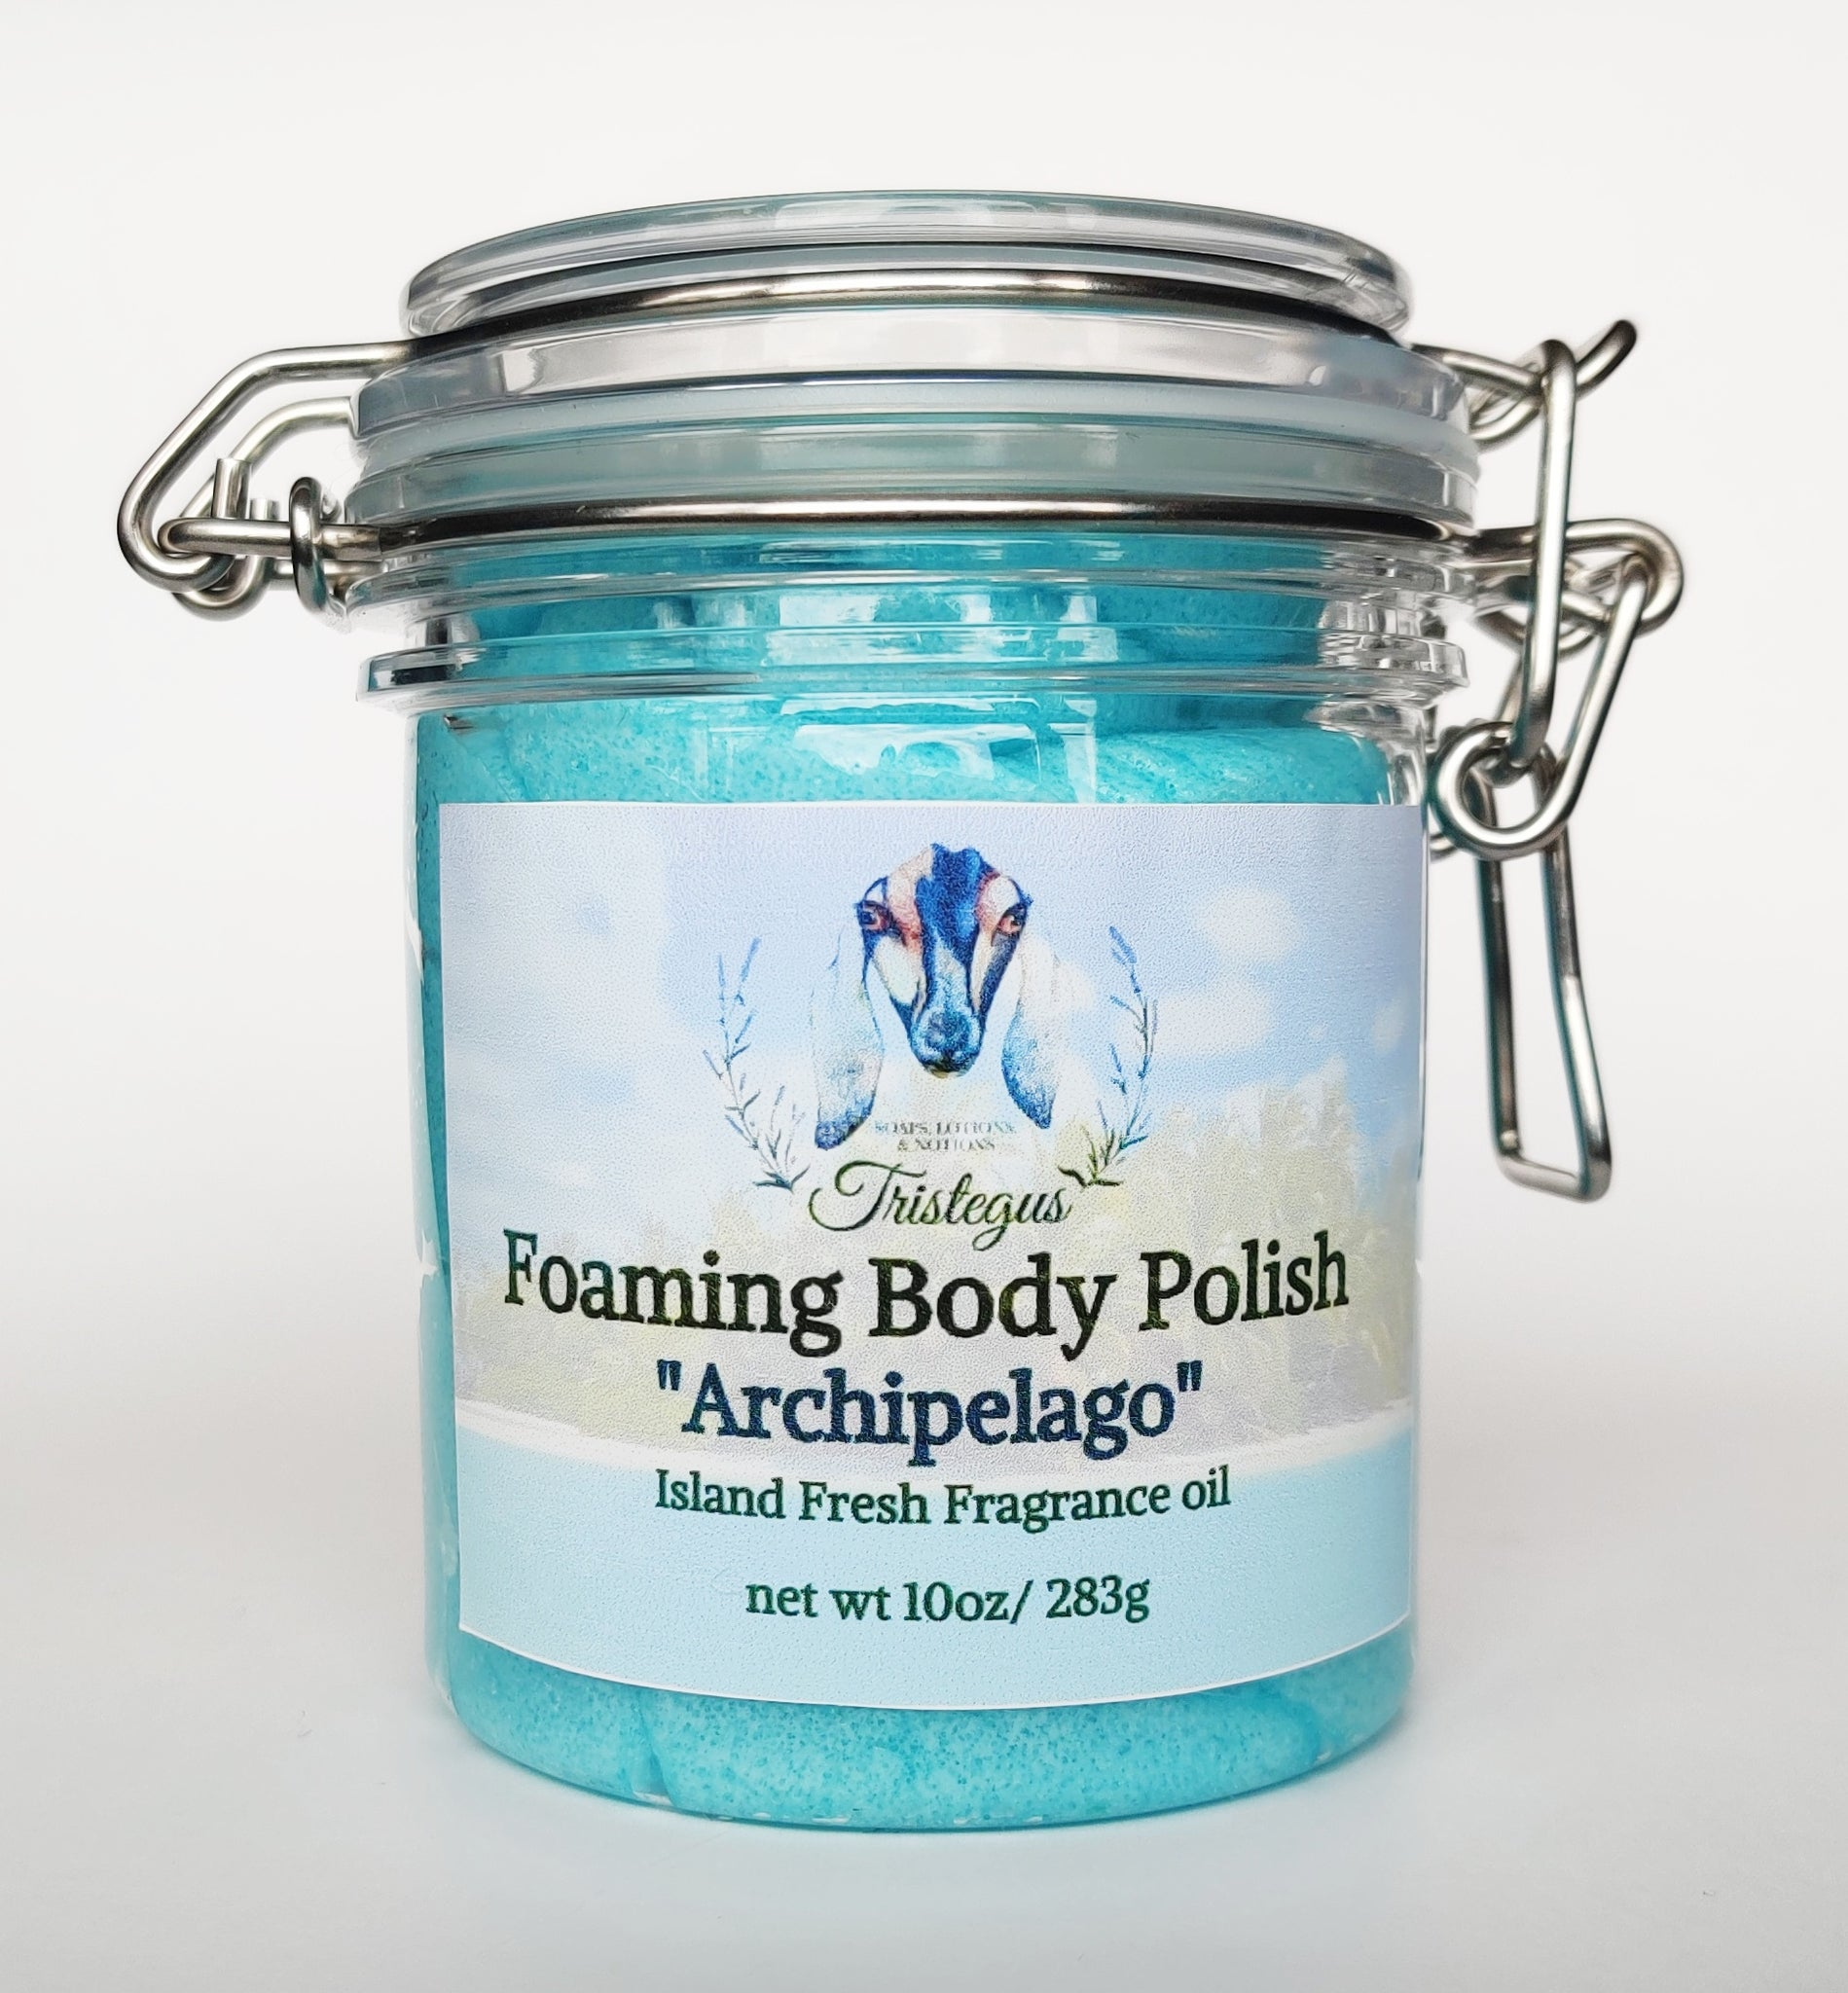 Foaming Body Polish